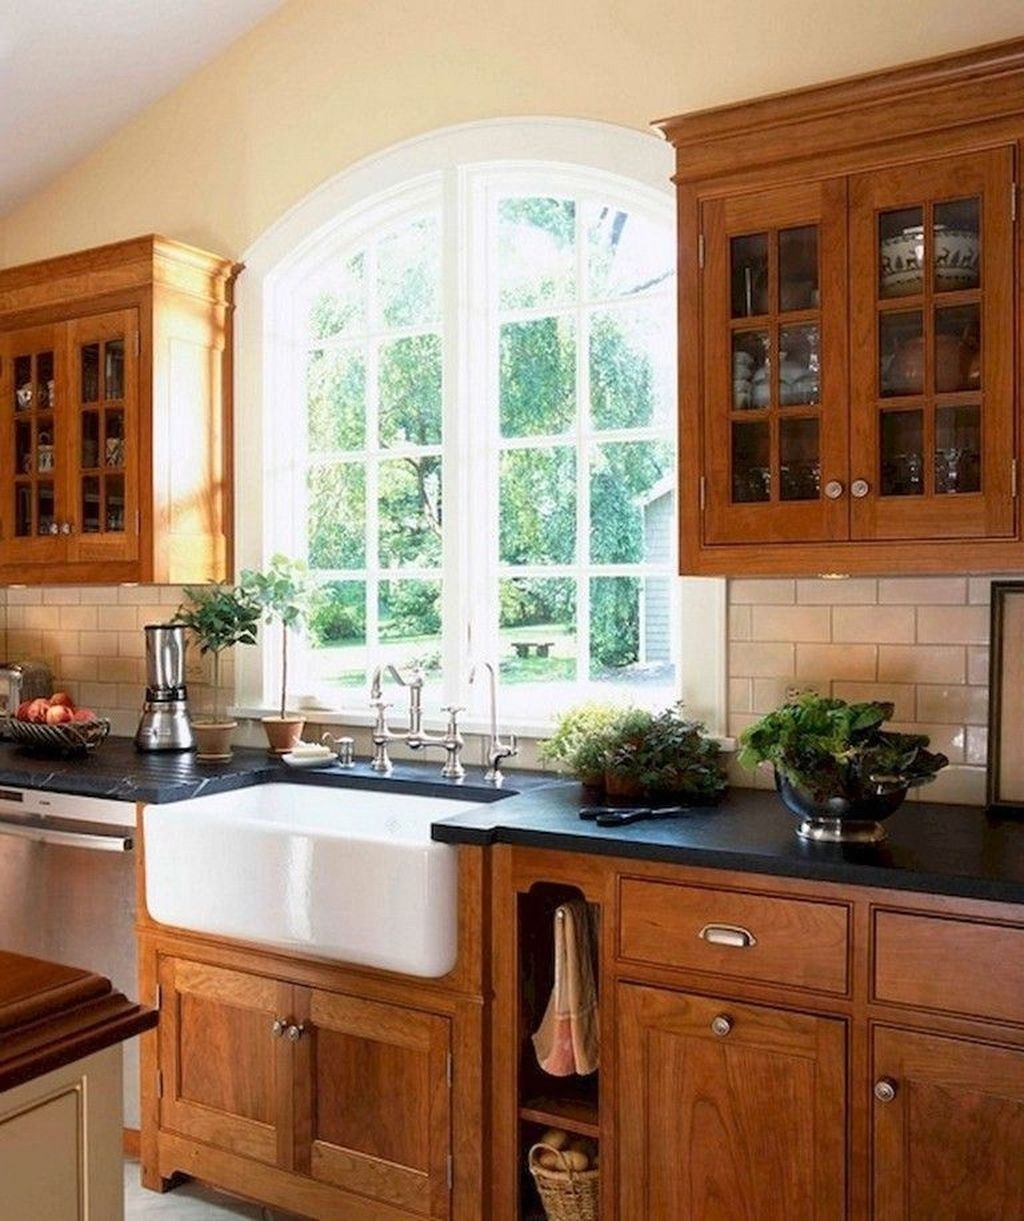 37 FARMHOUSE KITCHEN DESIGN IDEAS in